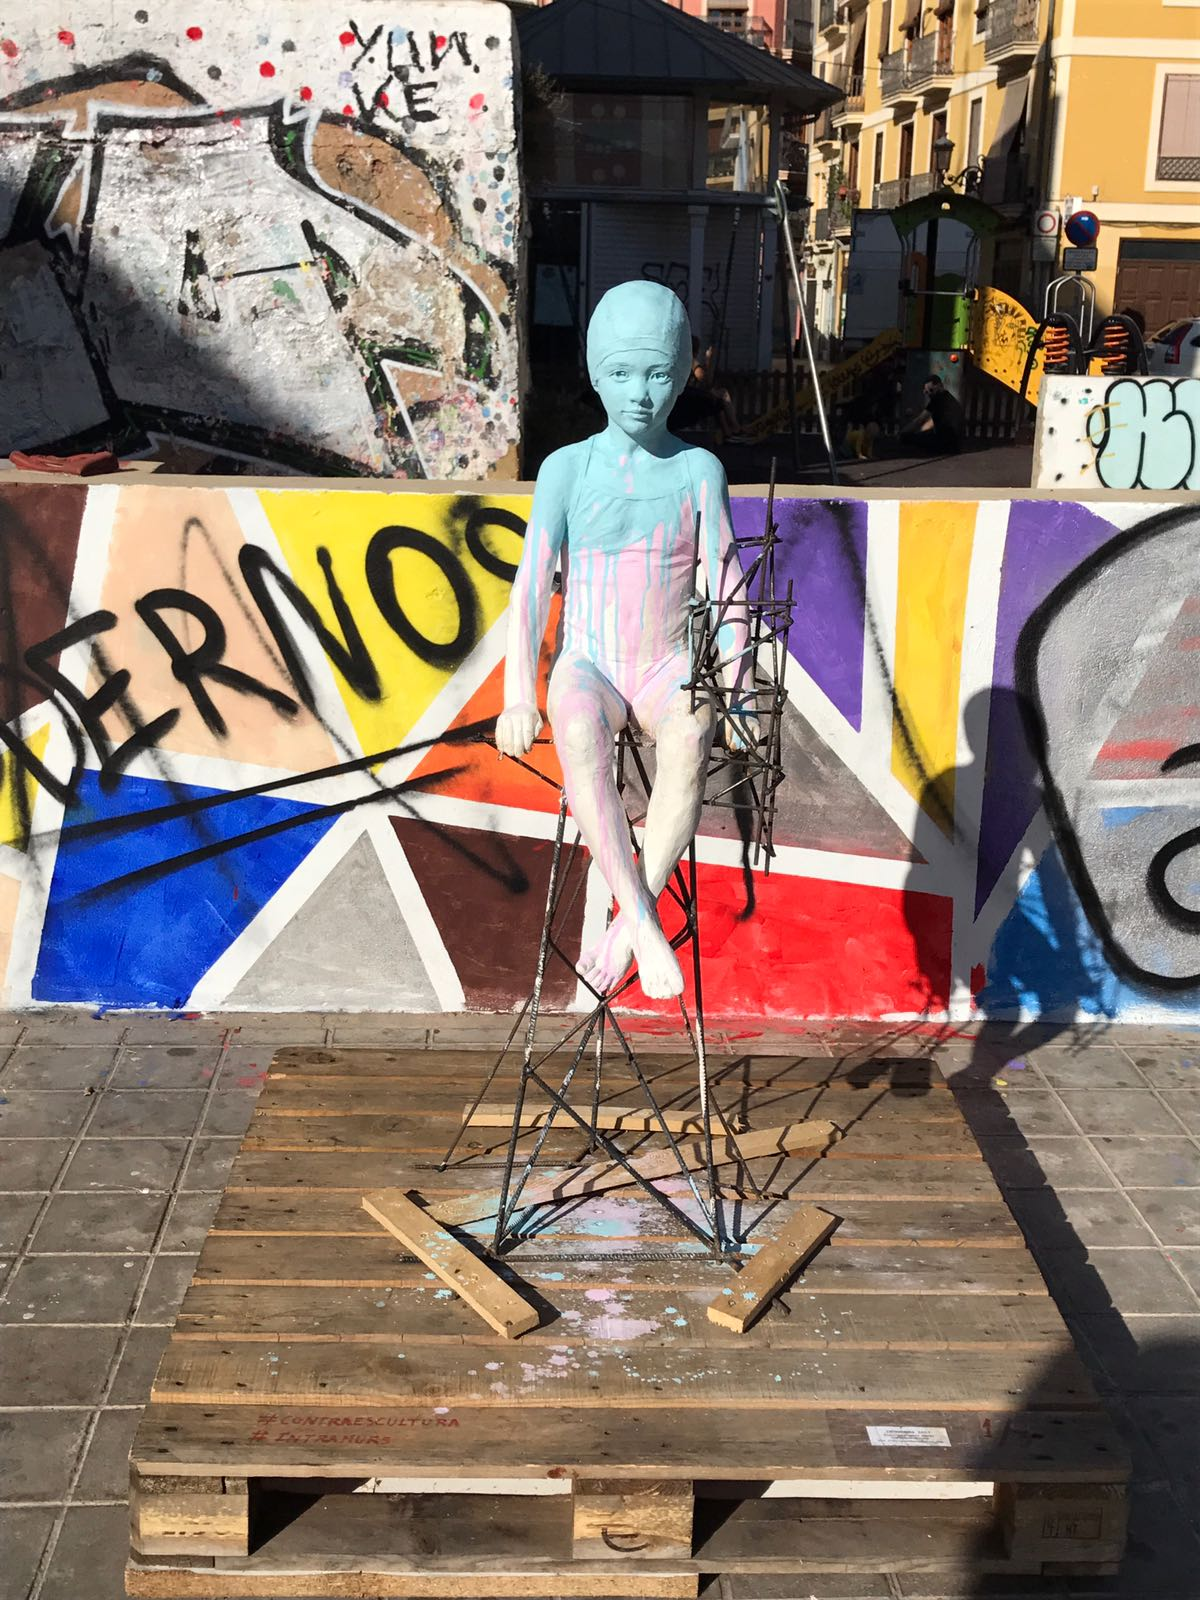 Sculpture of girl made in plaster, splashed with paint sitting on a wire chair on a wooden pallet